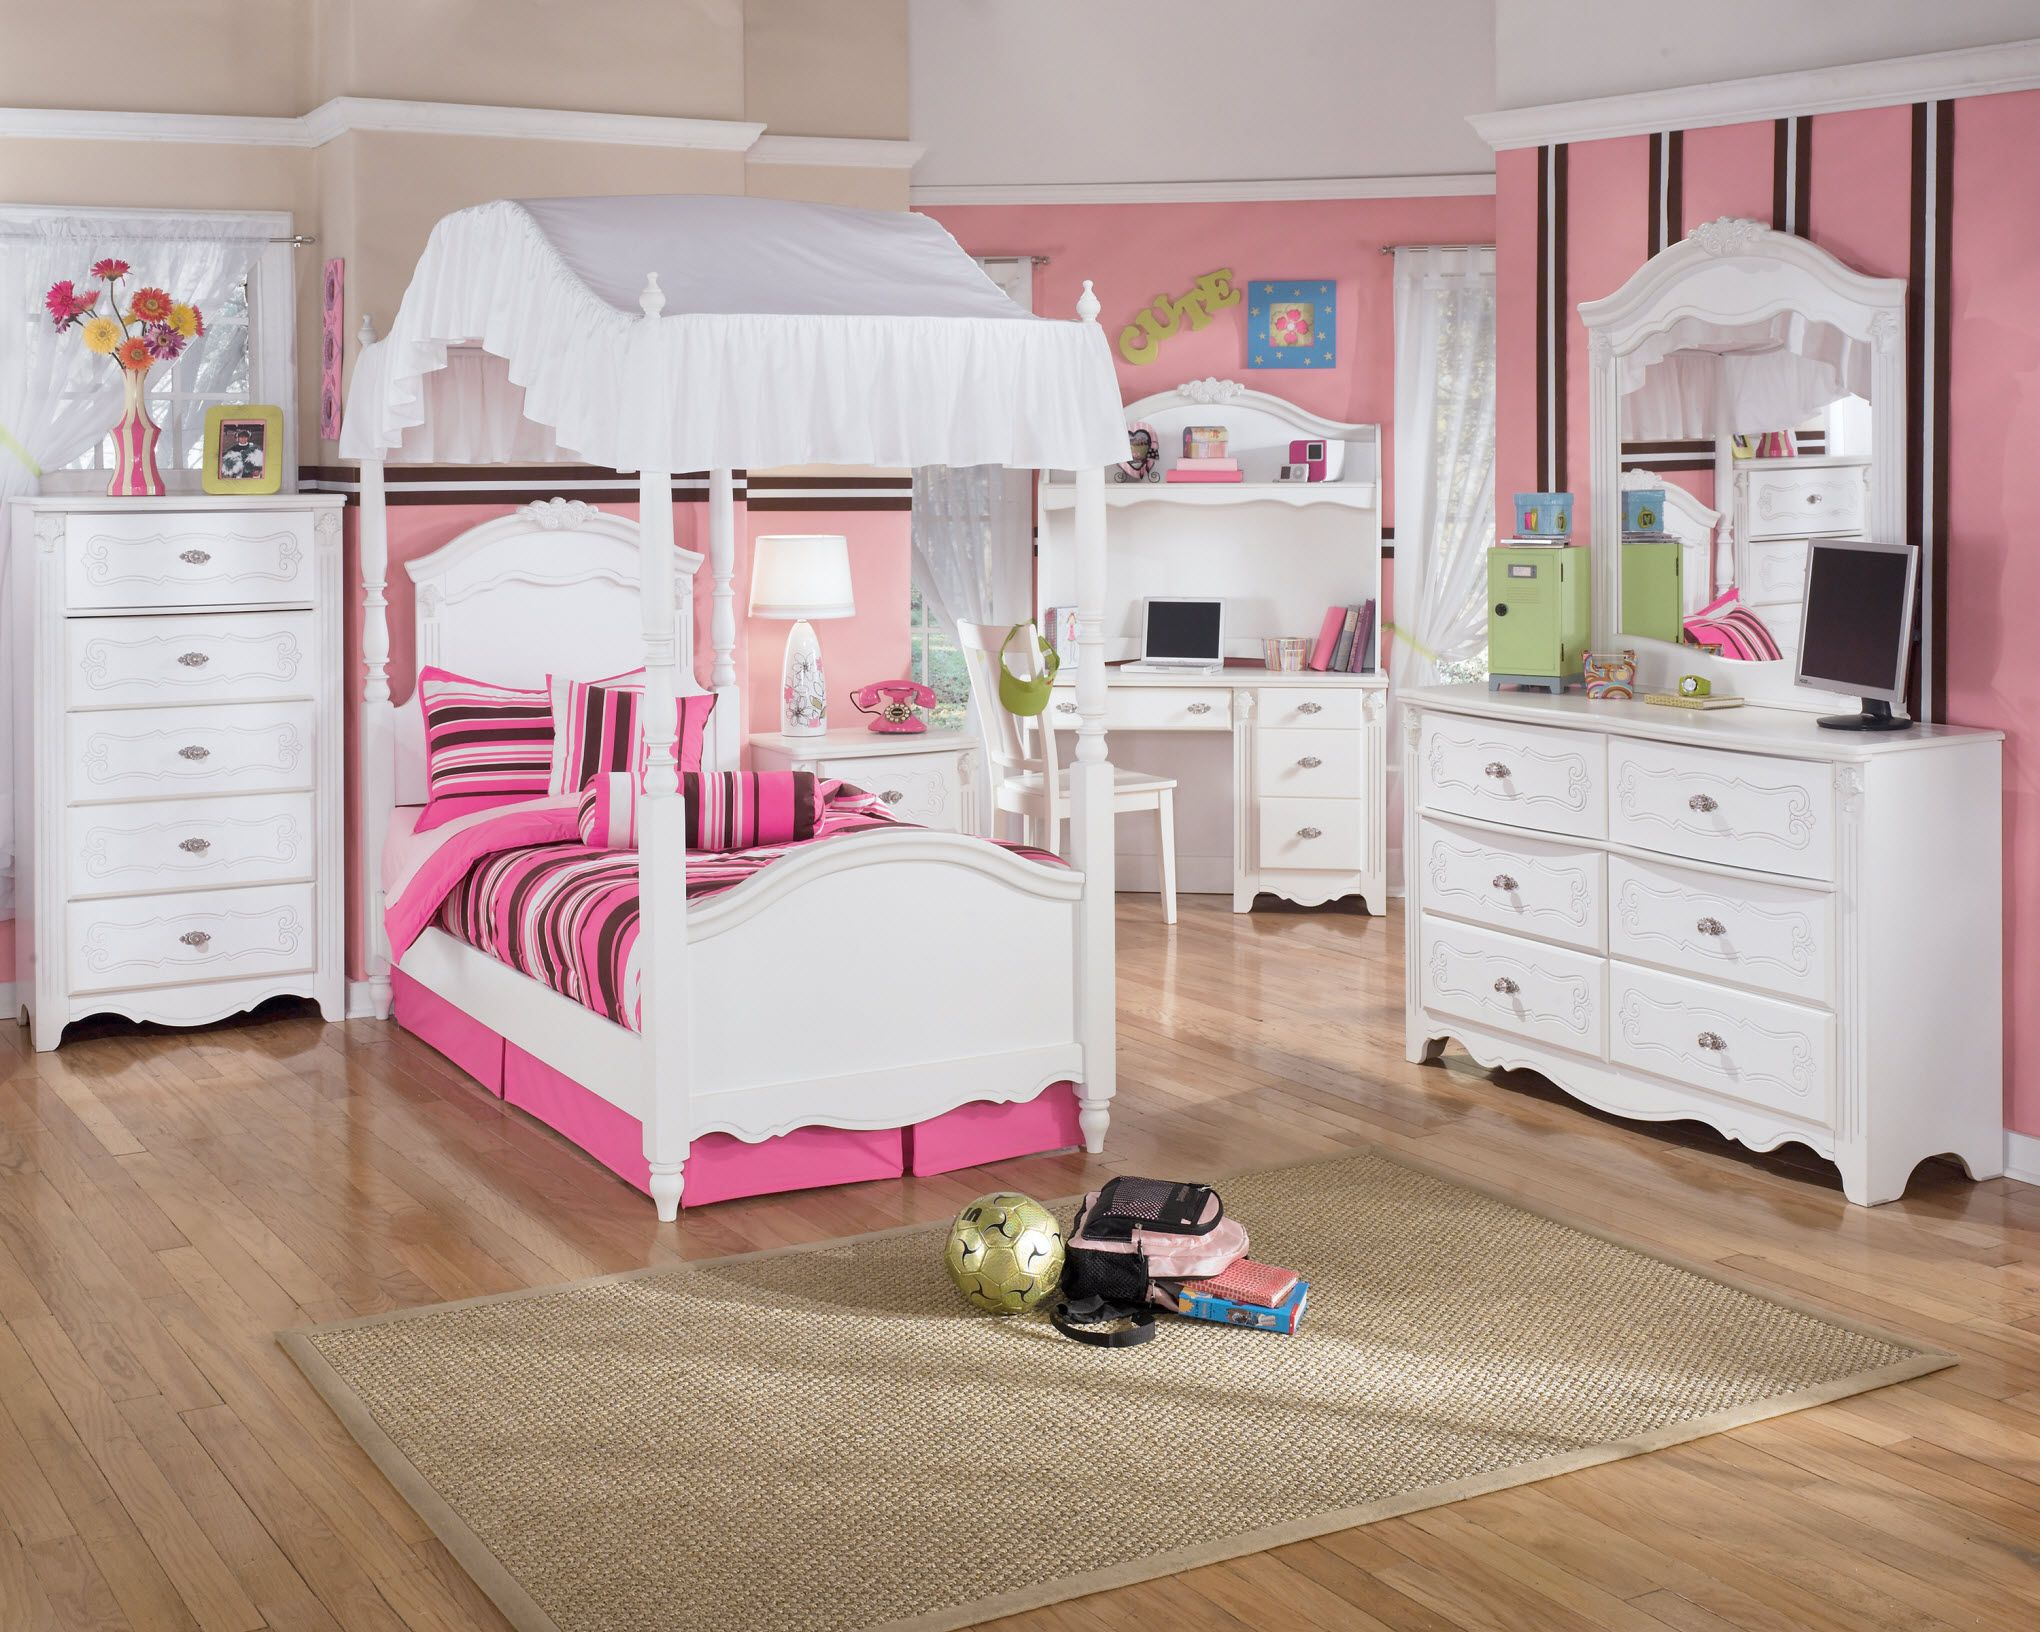 White Bedroom Furniture For Girls kid bedroom stripe pattern and white bedroom furniture set theme